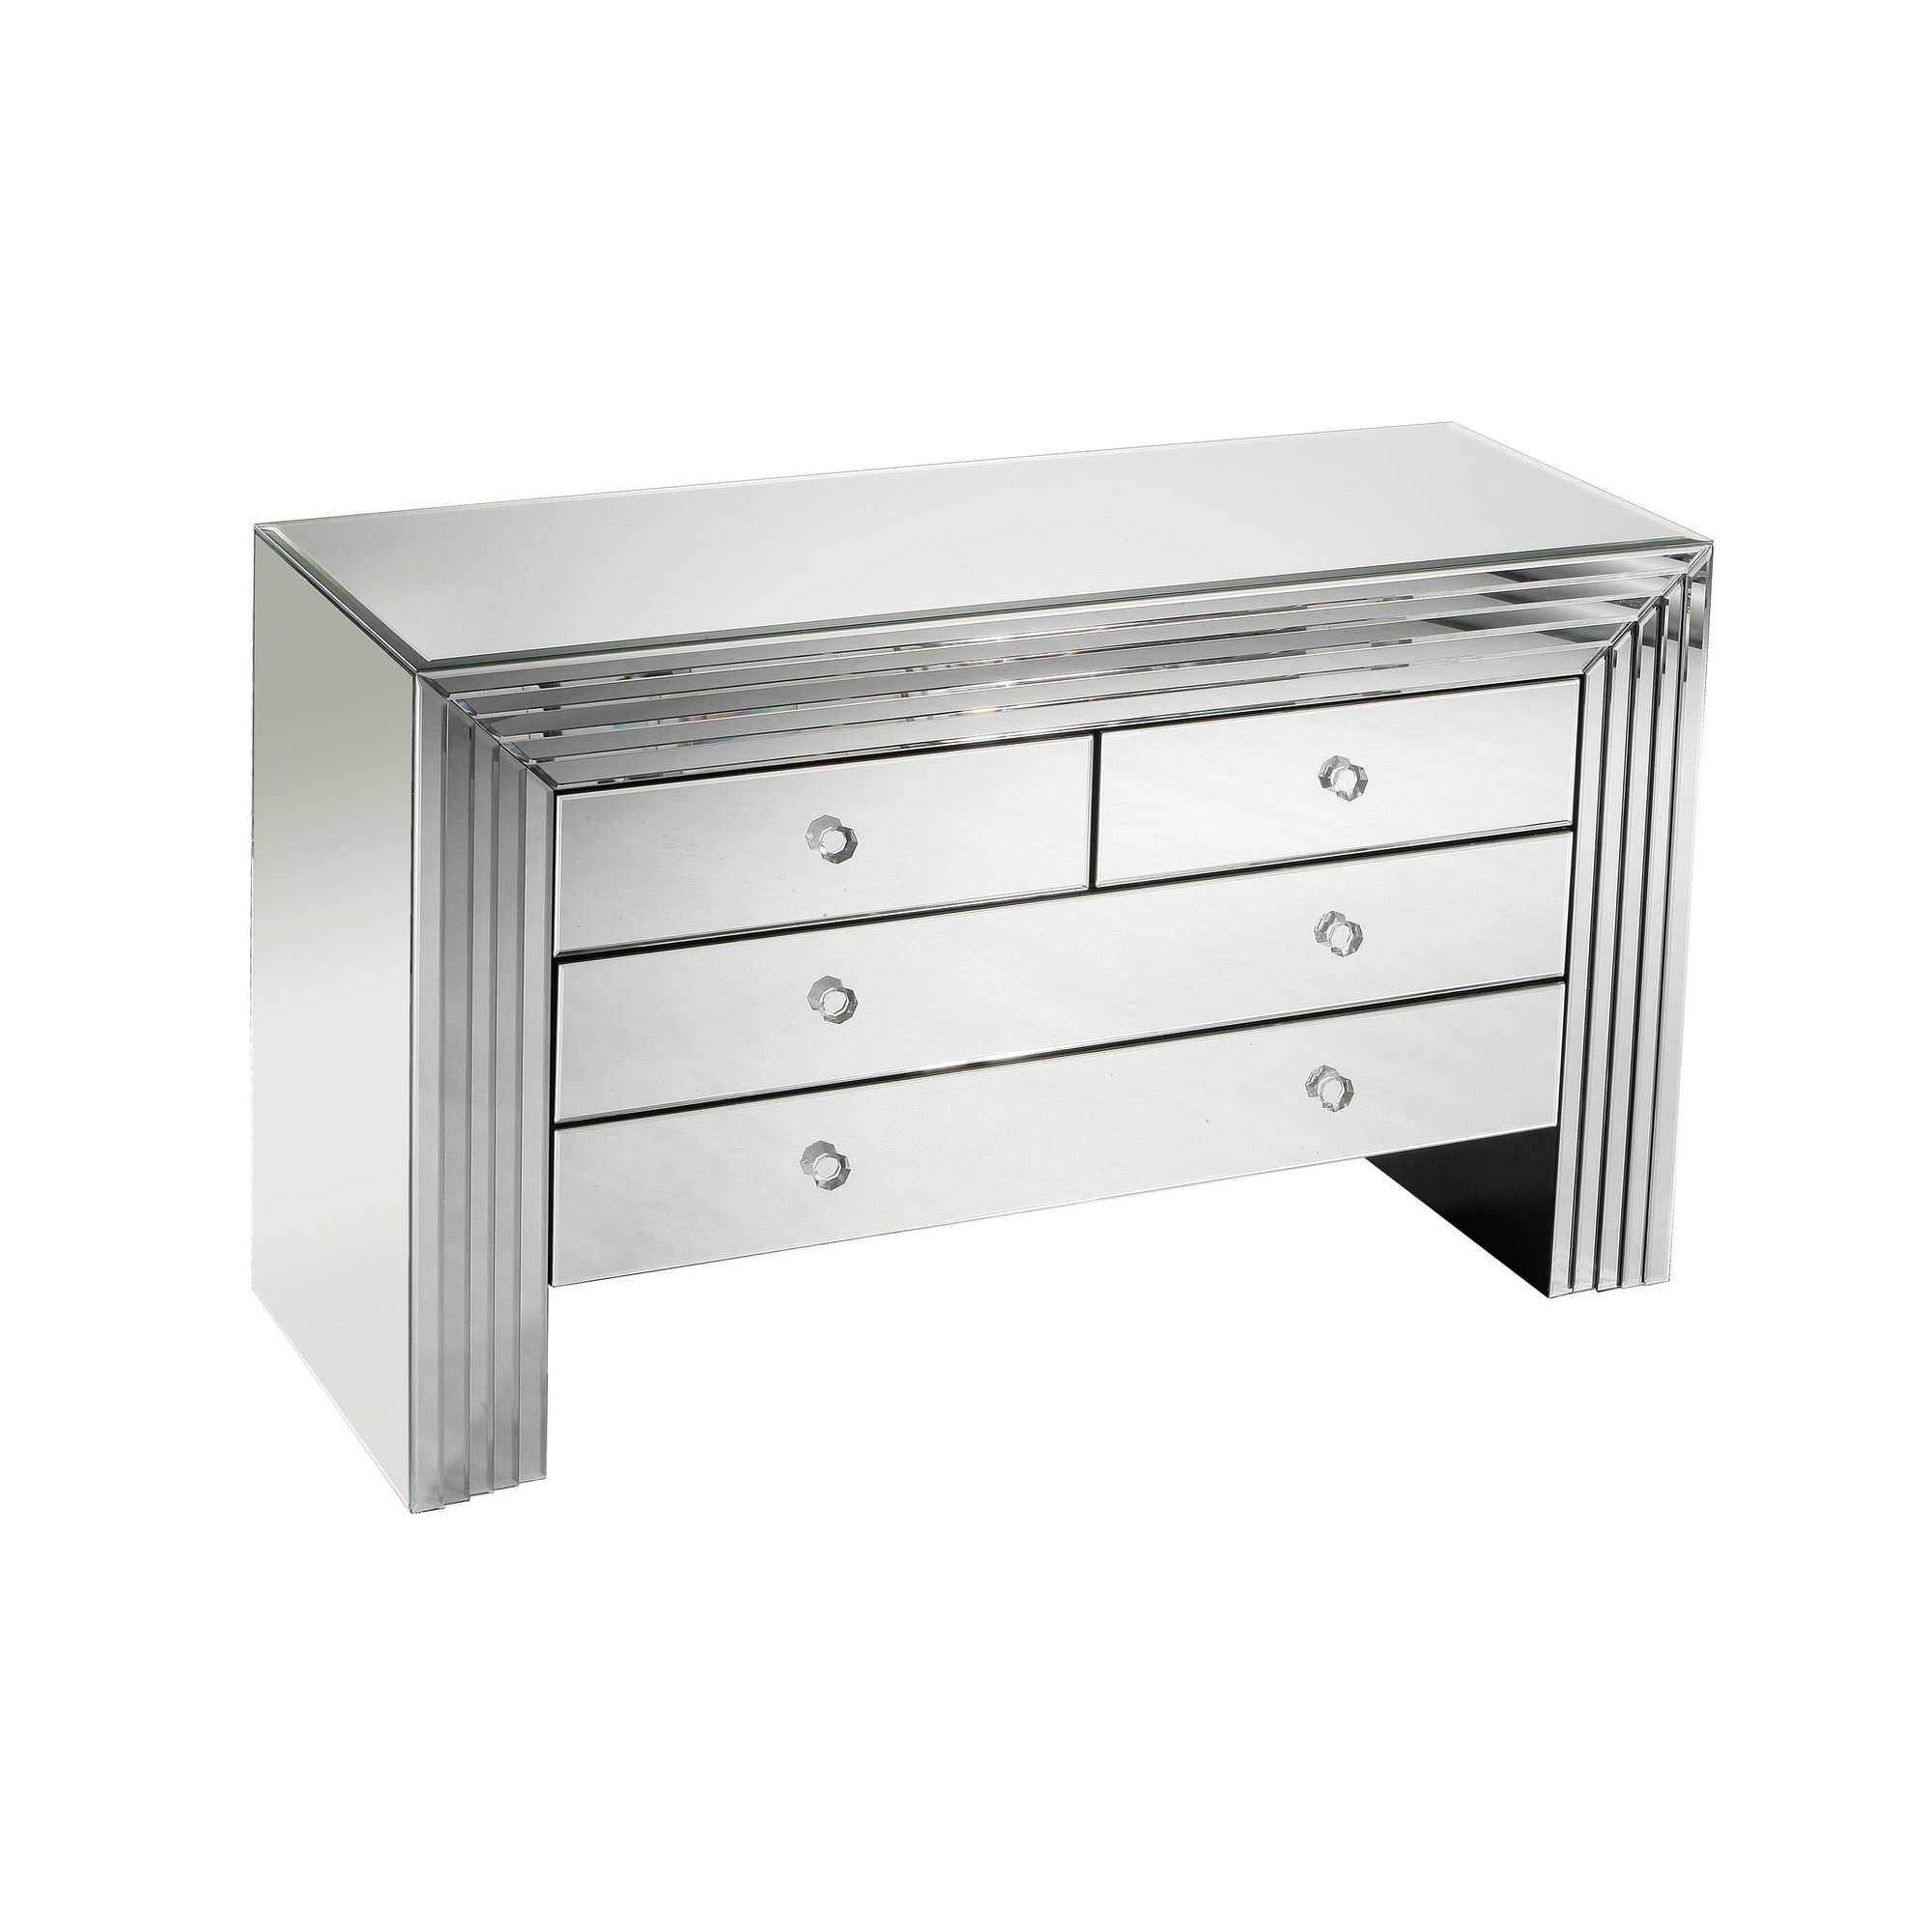 Premier Housewares New Line 4 Drawer Chest at Tesco Direct